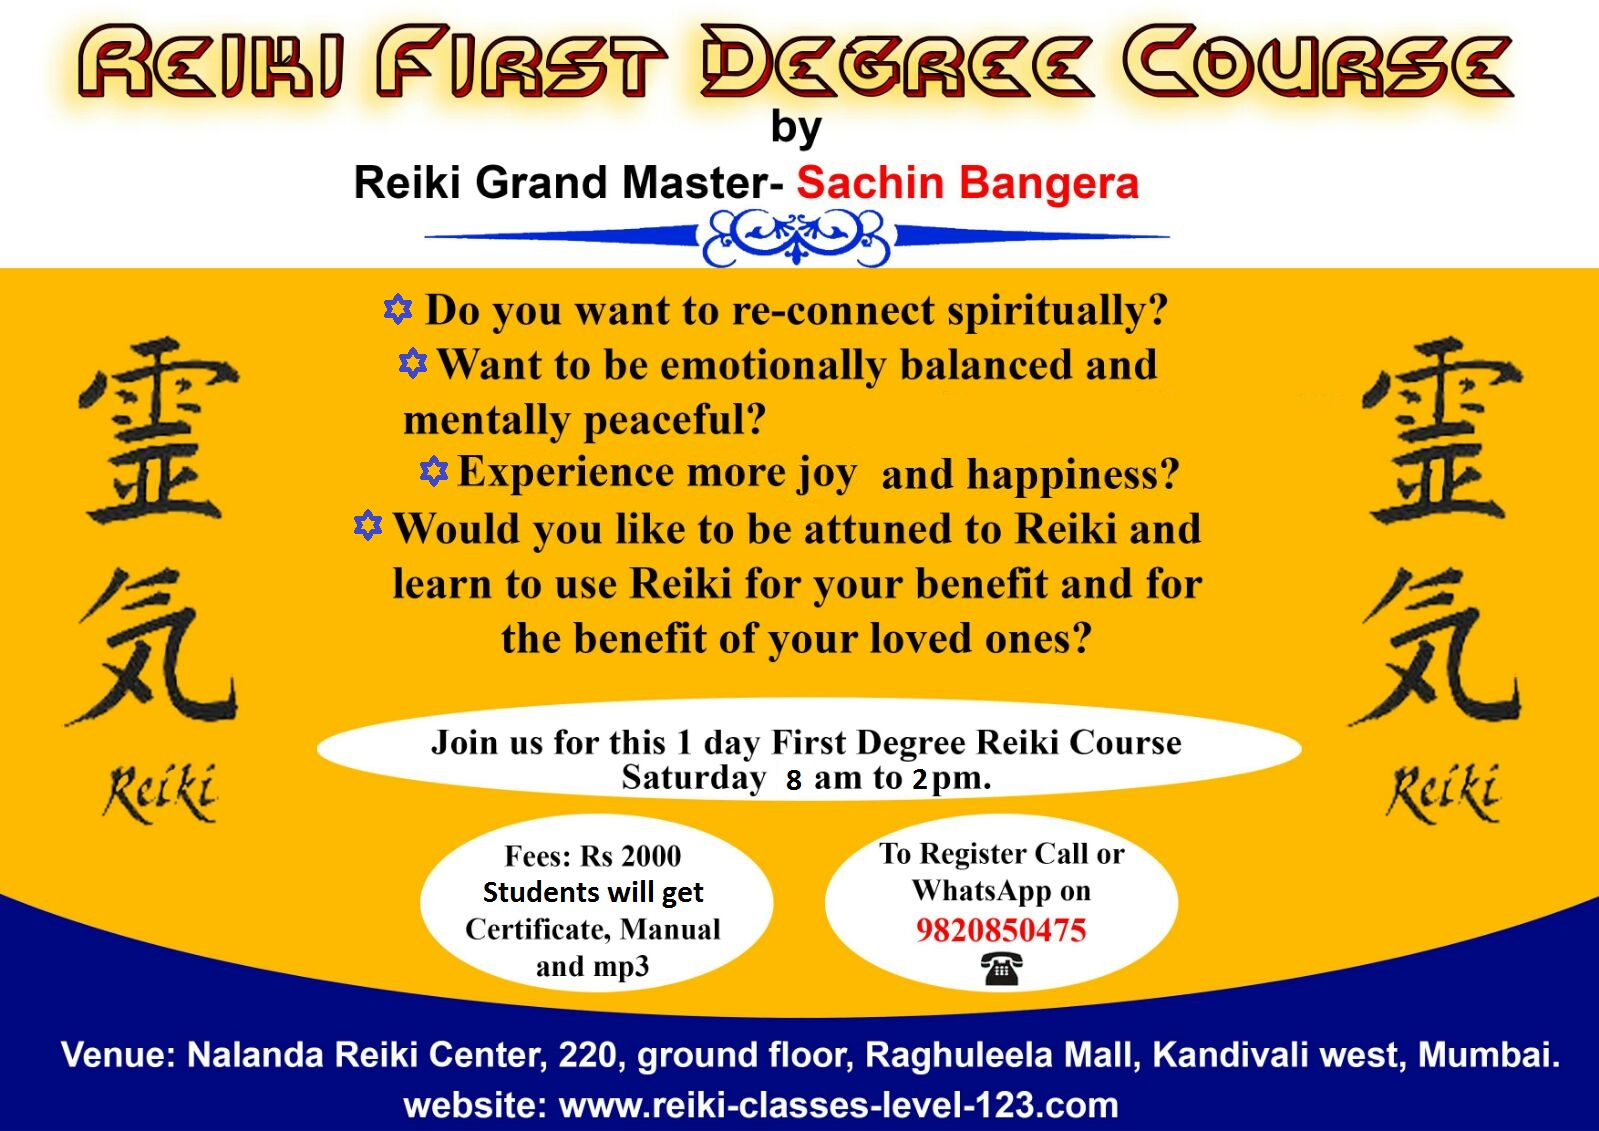 Reiki reiki classes in mumbai once you complete the reiki class you can come to nalanda reiki center to refresh the course any time in future in fact anyone who has received reiki biocorpaavc